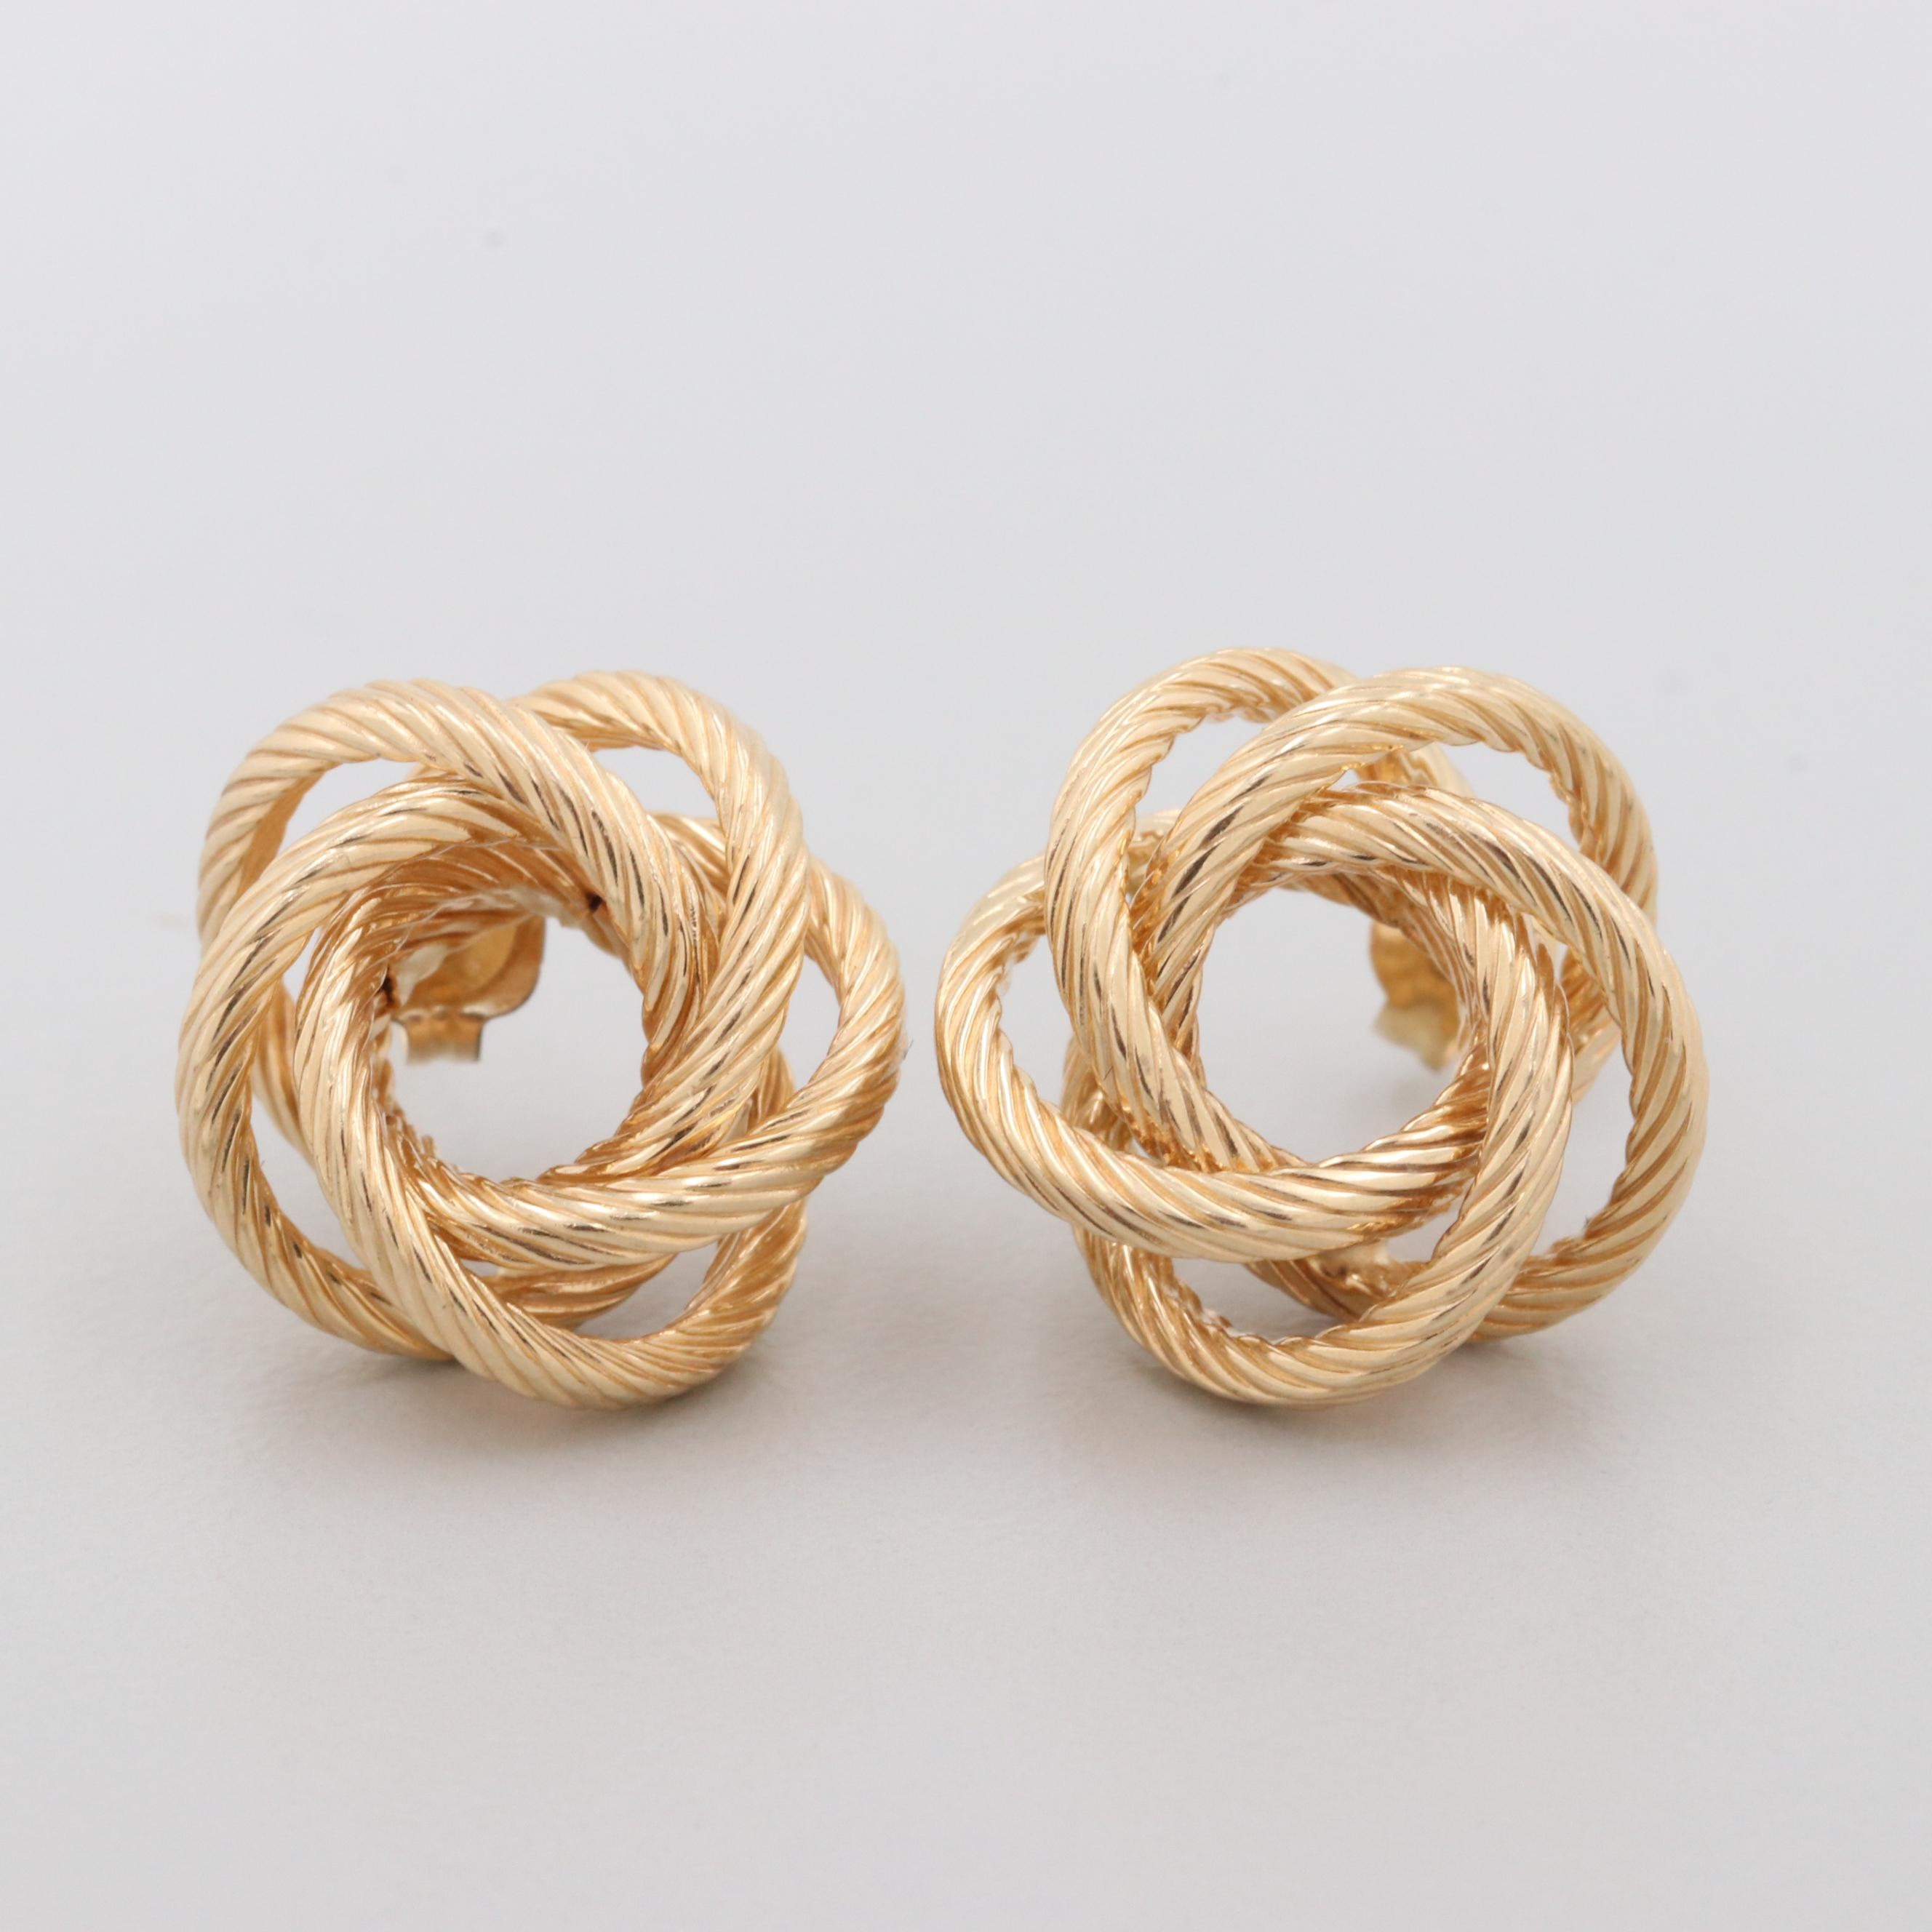 14K Yellow Gold Twisted Knot Earrings